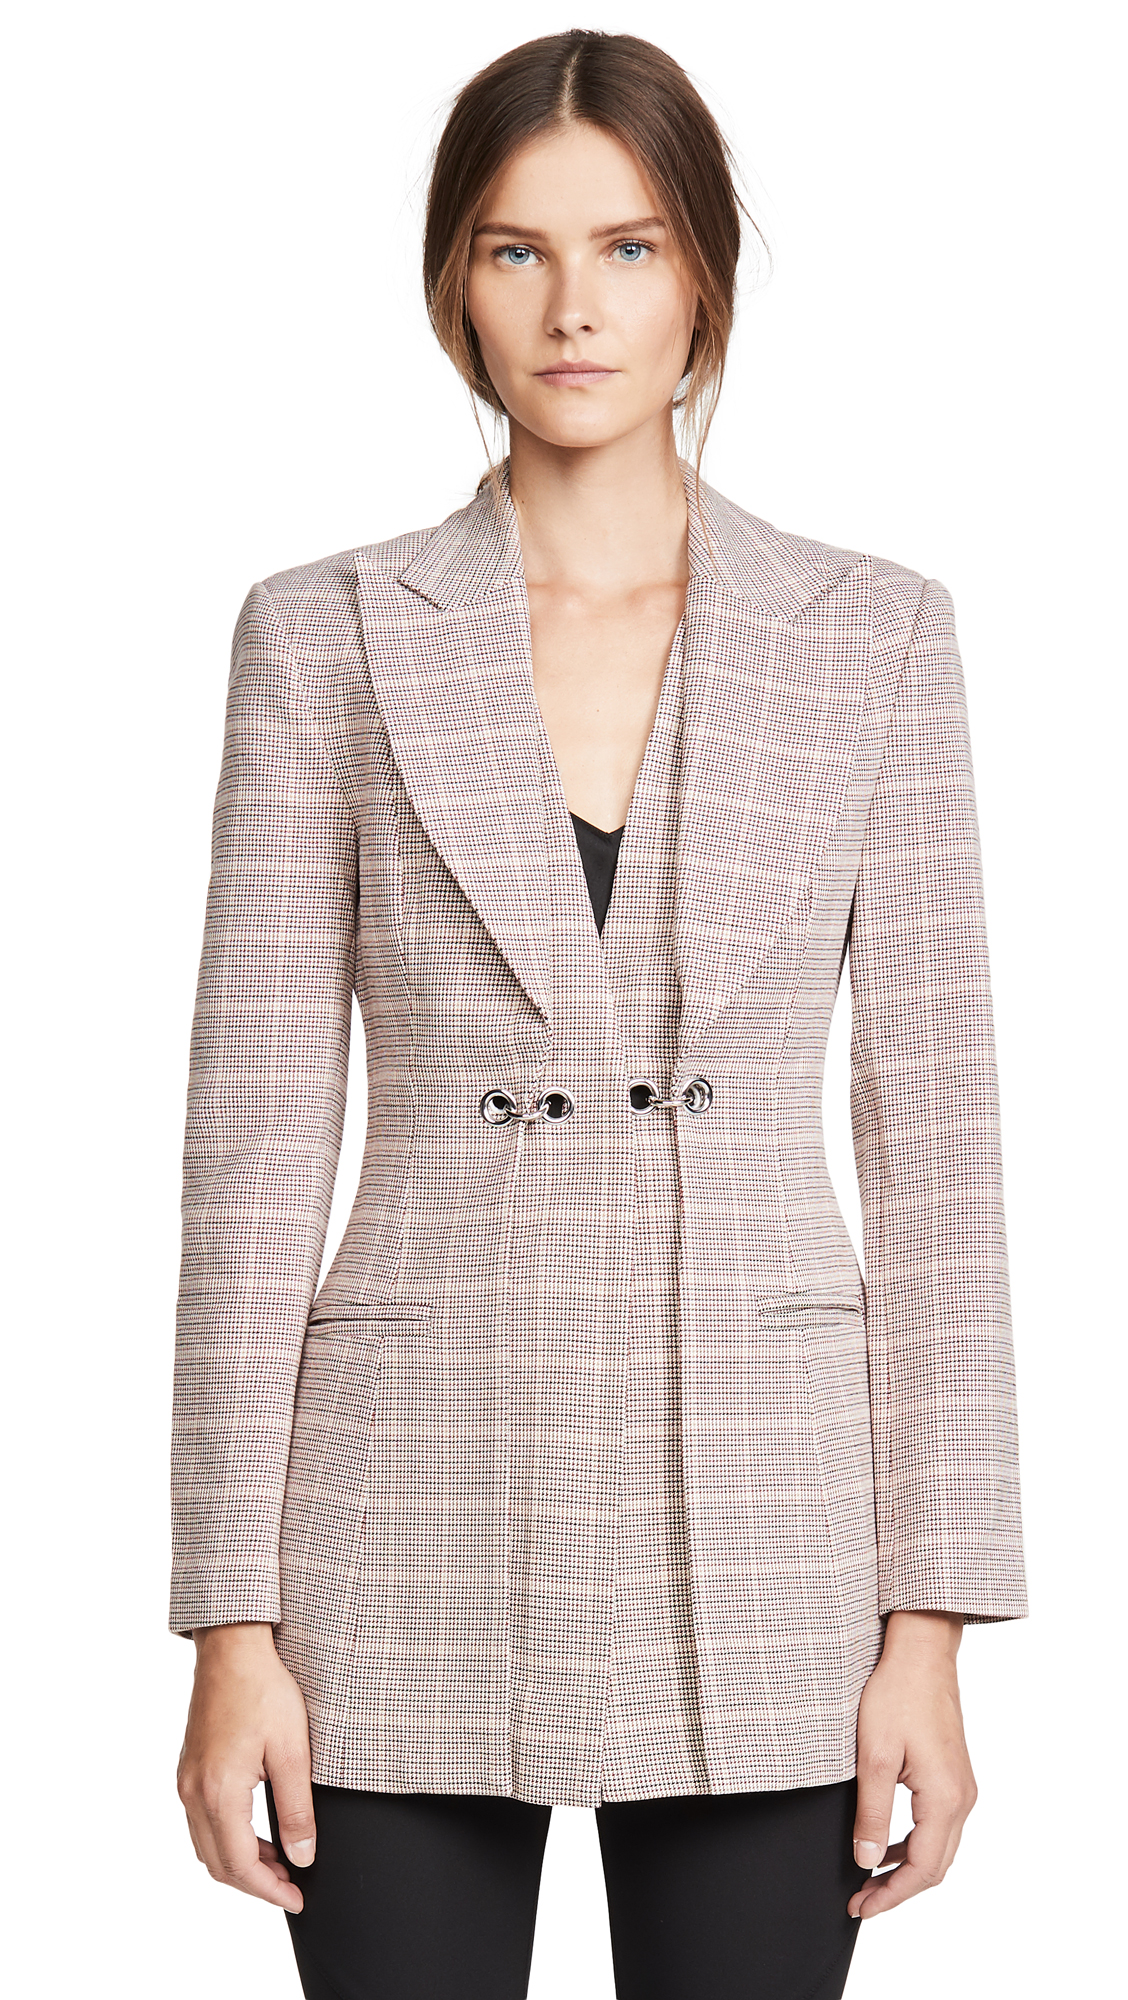 Acler Fairfax Blazer - Clay Check